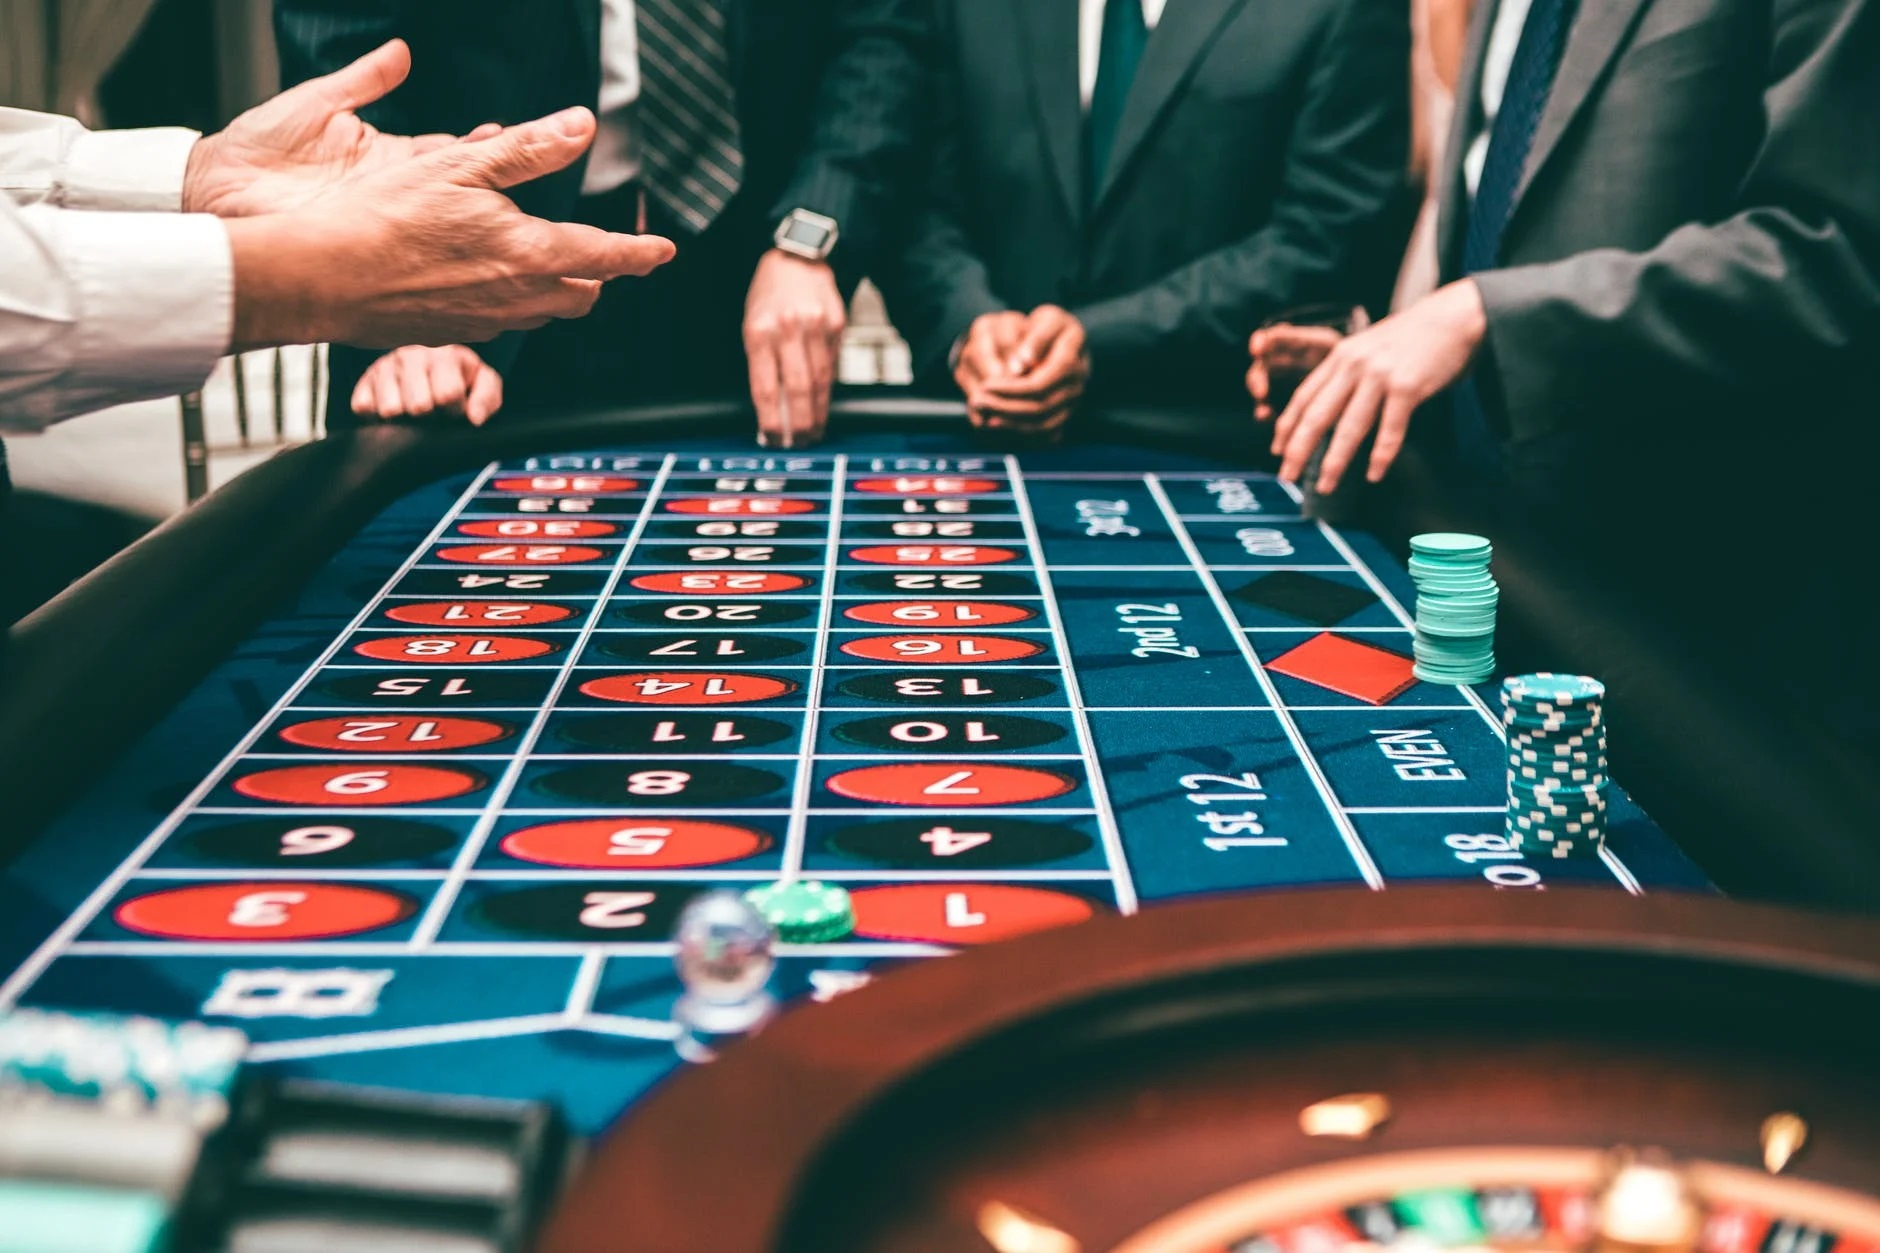 Small Business, Big Lessons®: What Entrepreneurs Can Learn From Roulette -  Chapelboro.com